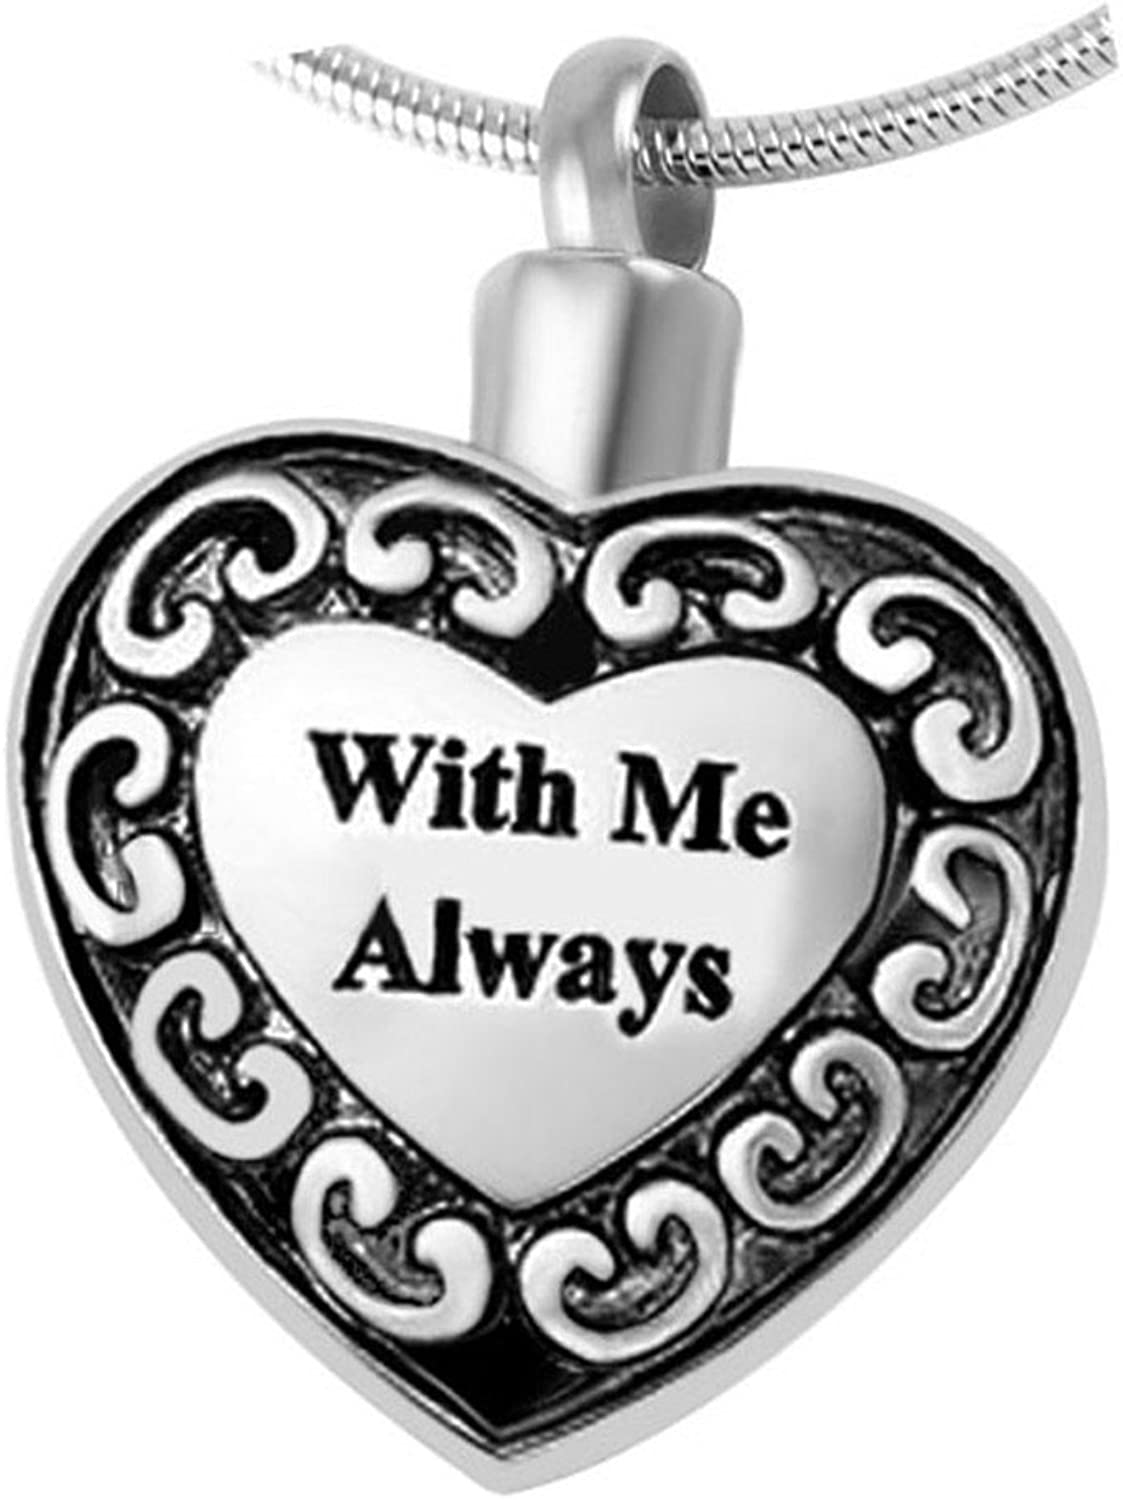 Pet Memorial Jewelry Urn Pendant  Choose from 6 Styles  Keepsake Paw Print Series Pet Memorial Cremation Jewelry Dog, Cat, Animal Ashes (Me Always)